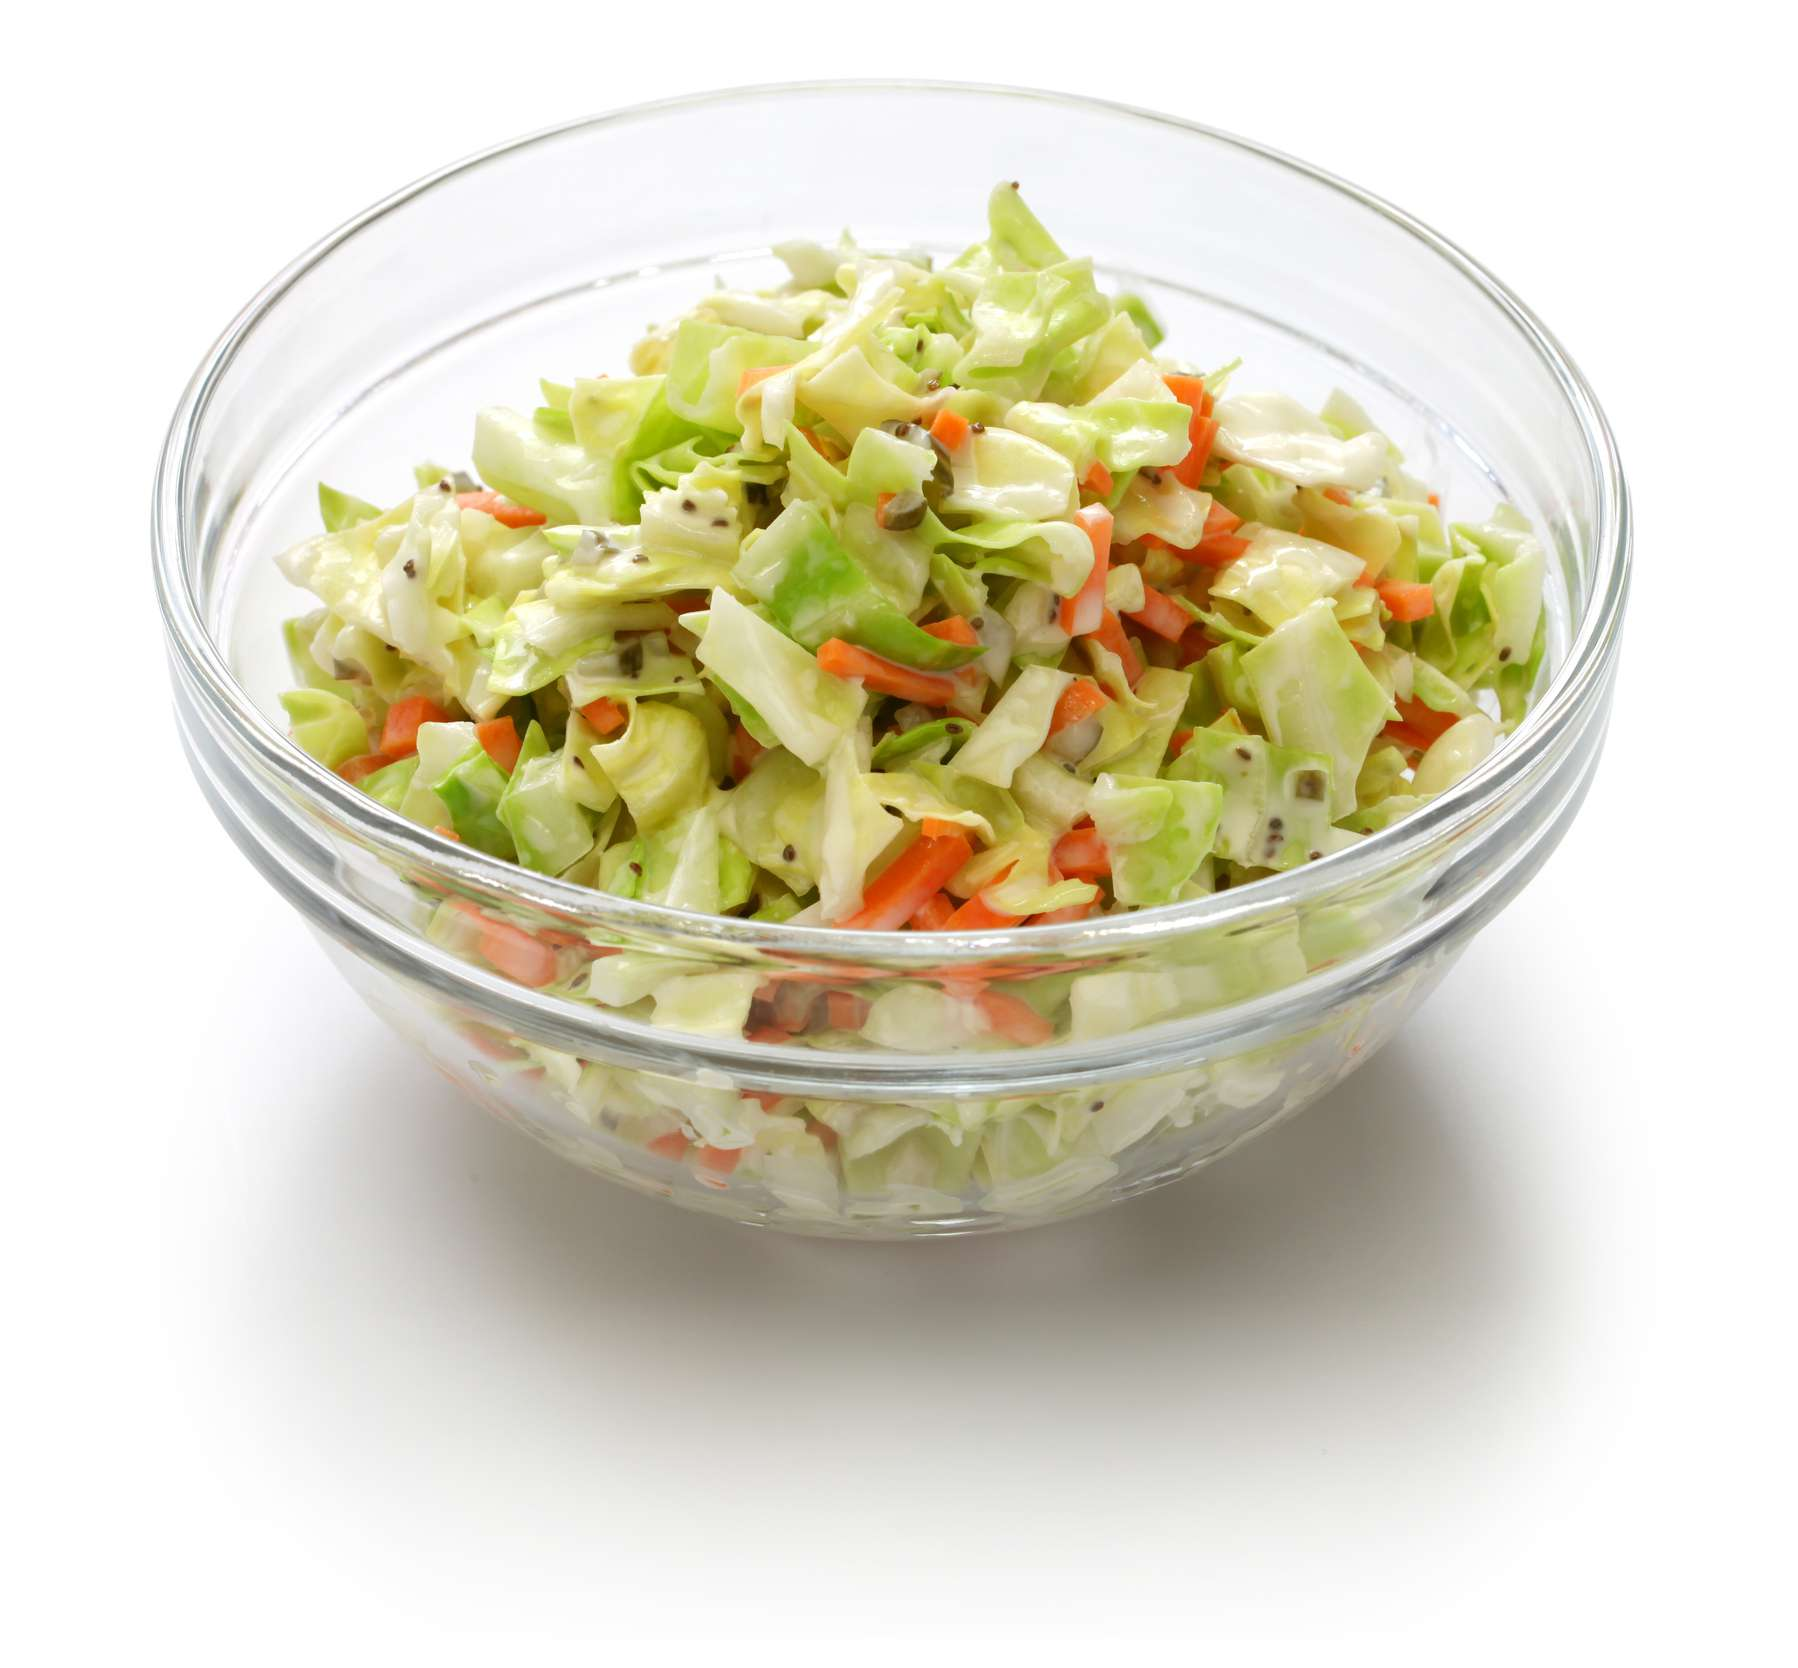 Coleslaw in a glass bowl